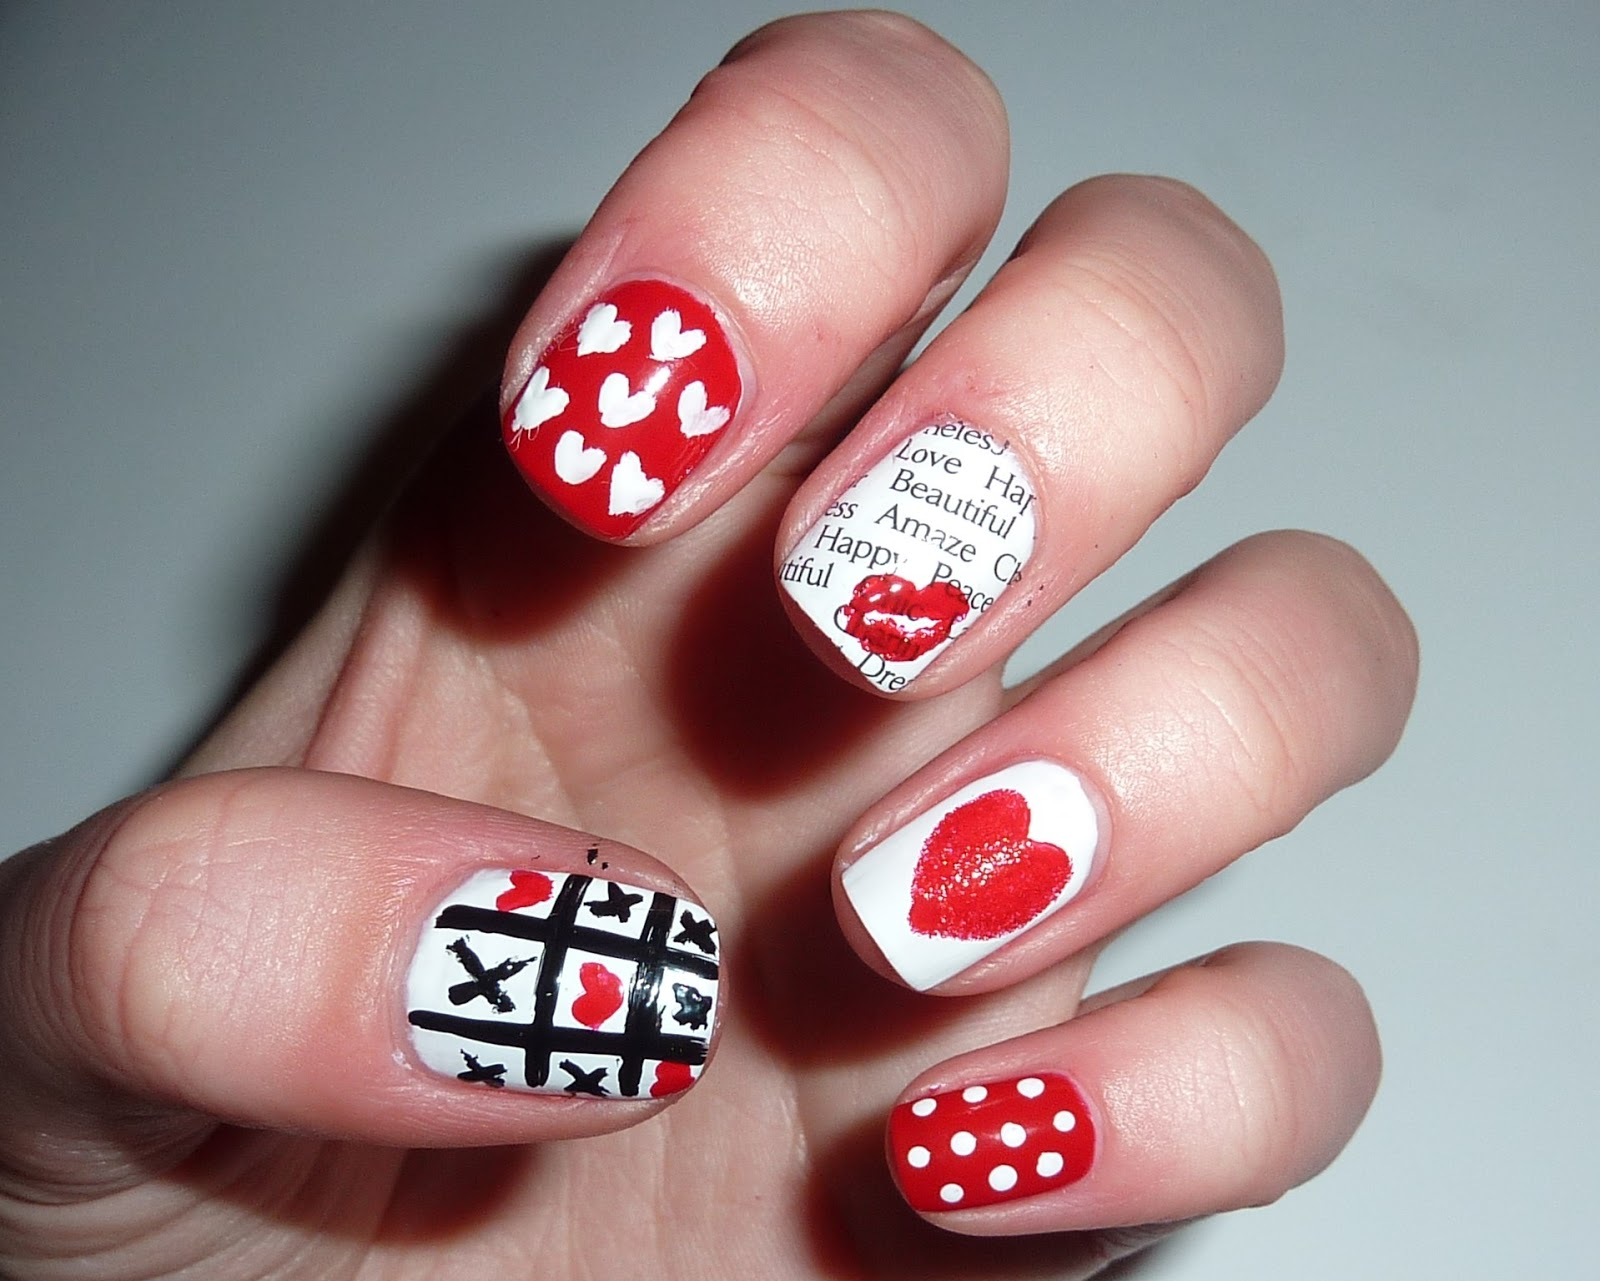 Sophie jenner valentines day nail art i love funky nail art designs as you all know and with it being valentines day today i just couldnt resist doing a valentines day manicure prinsesfo Gallery